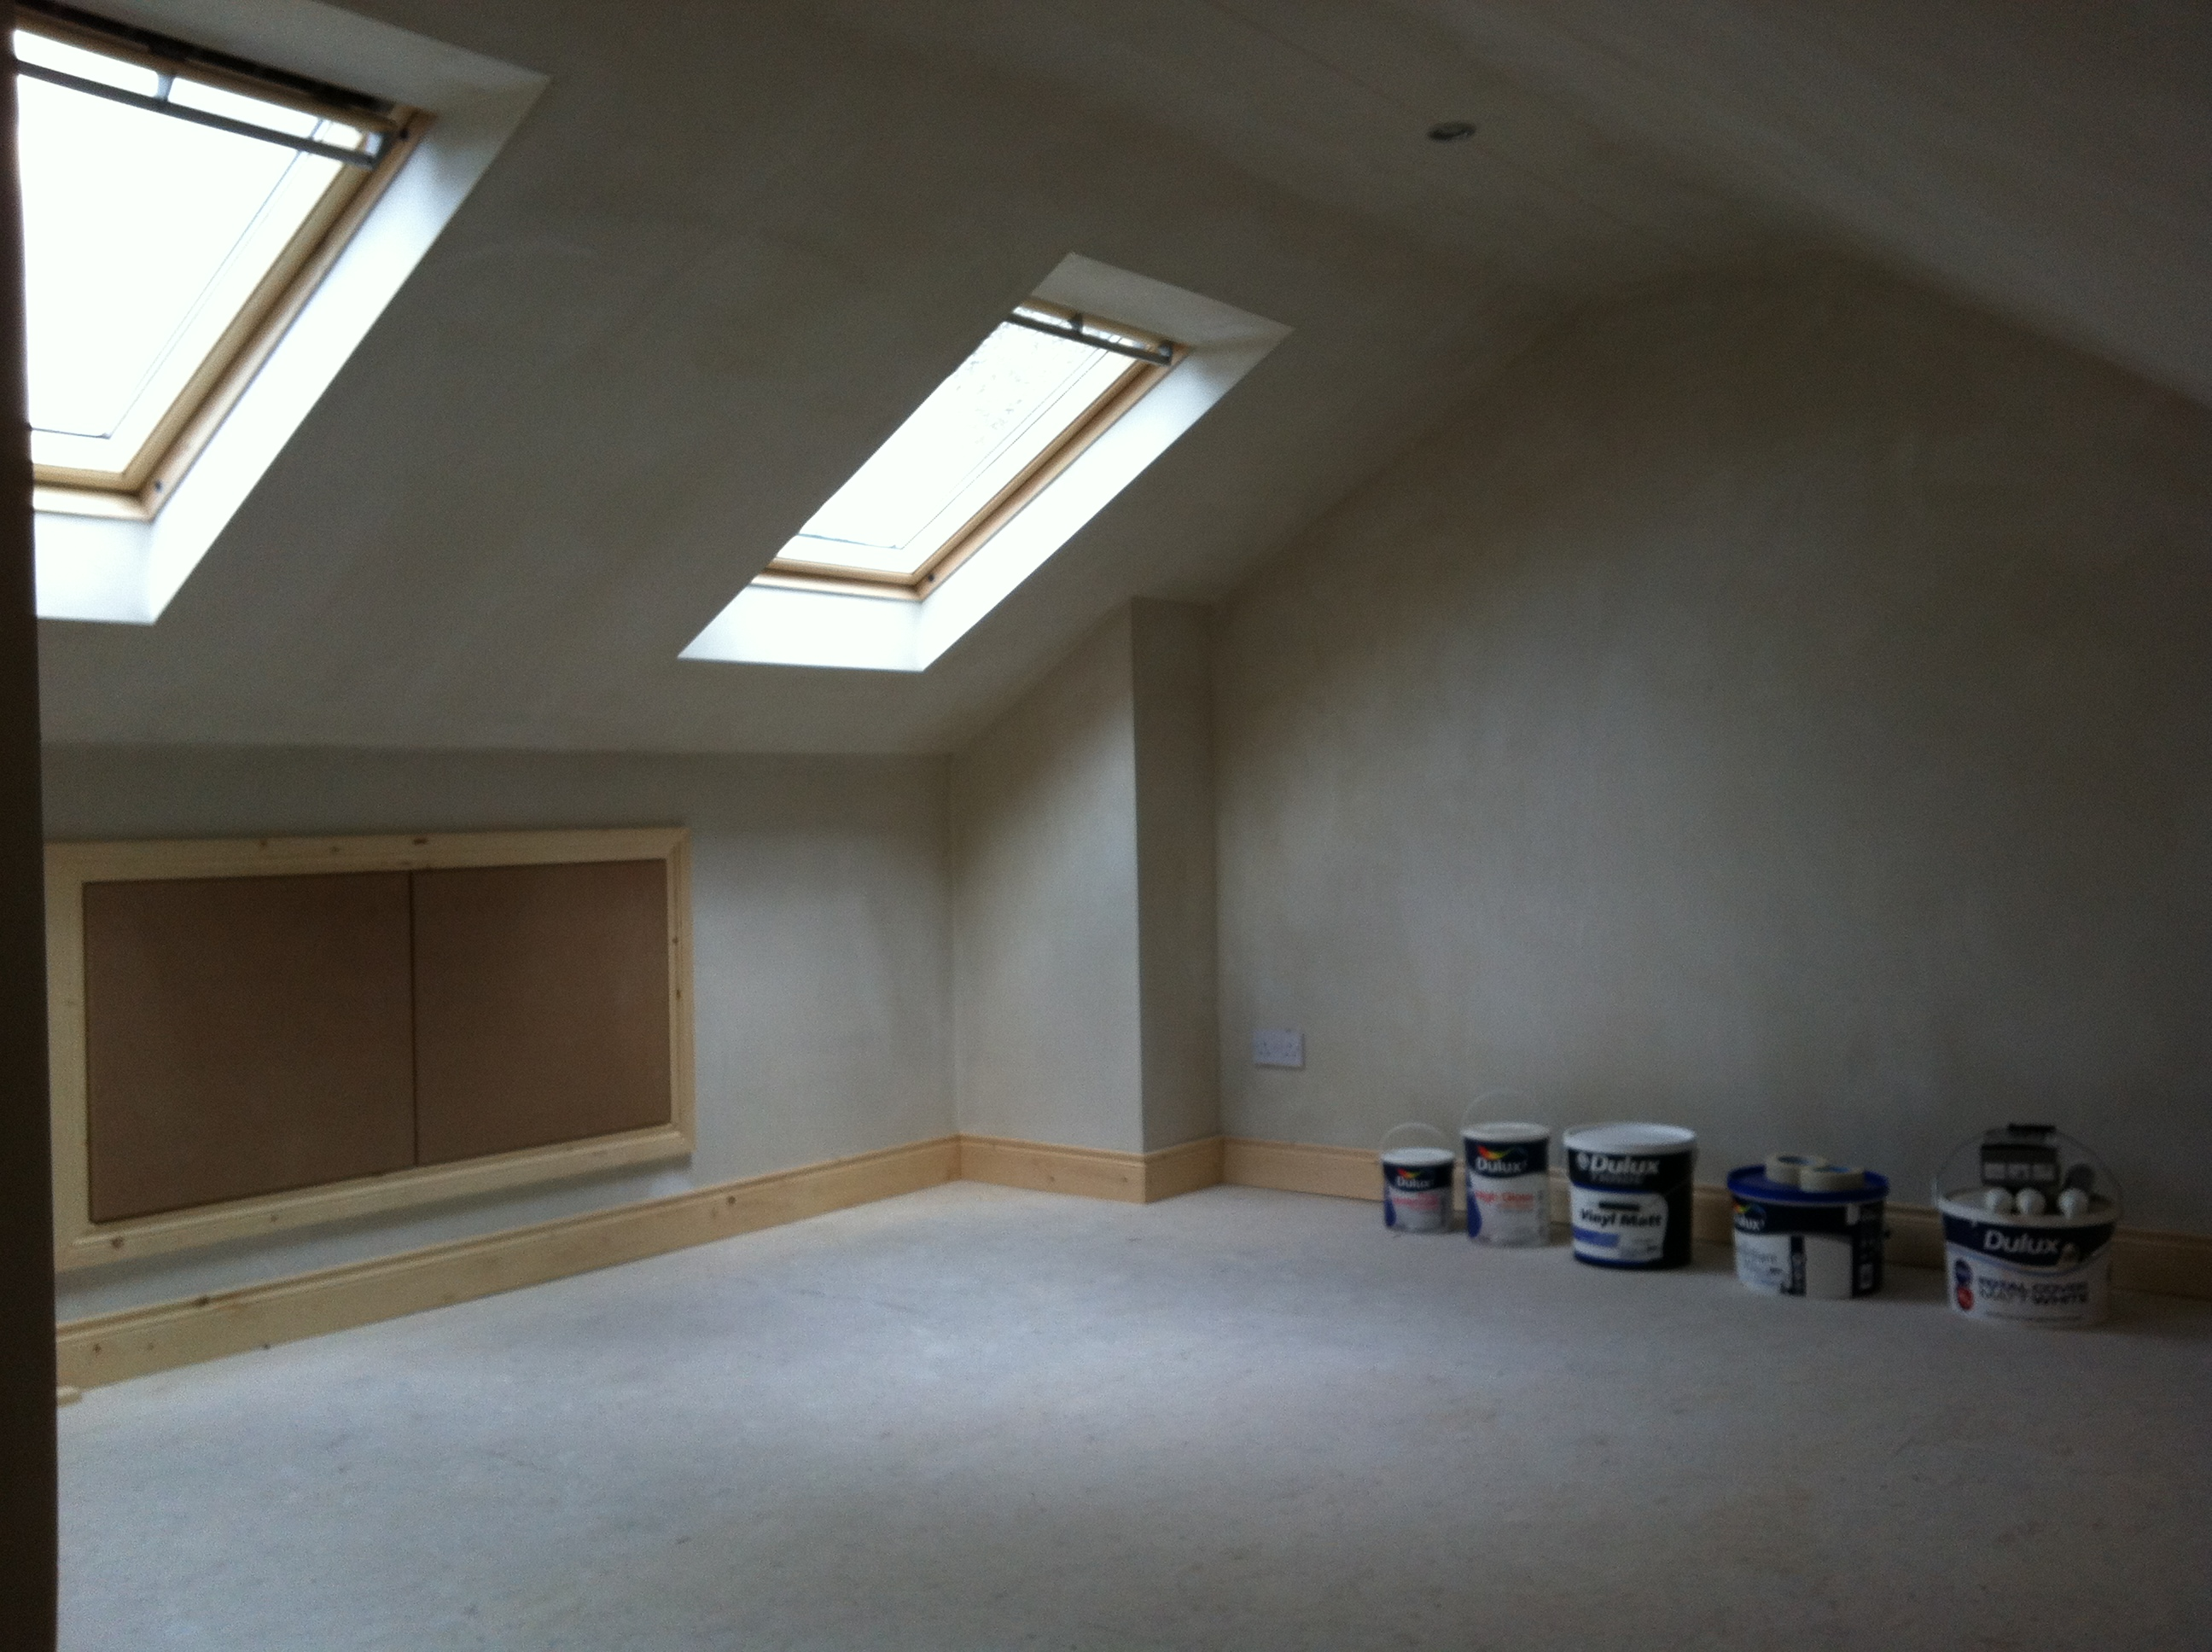 Attic conversion floor